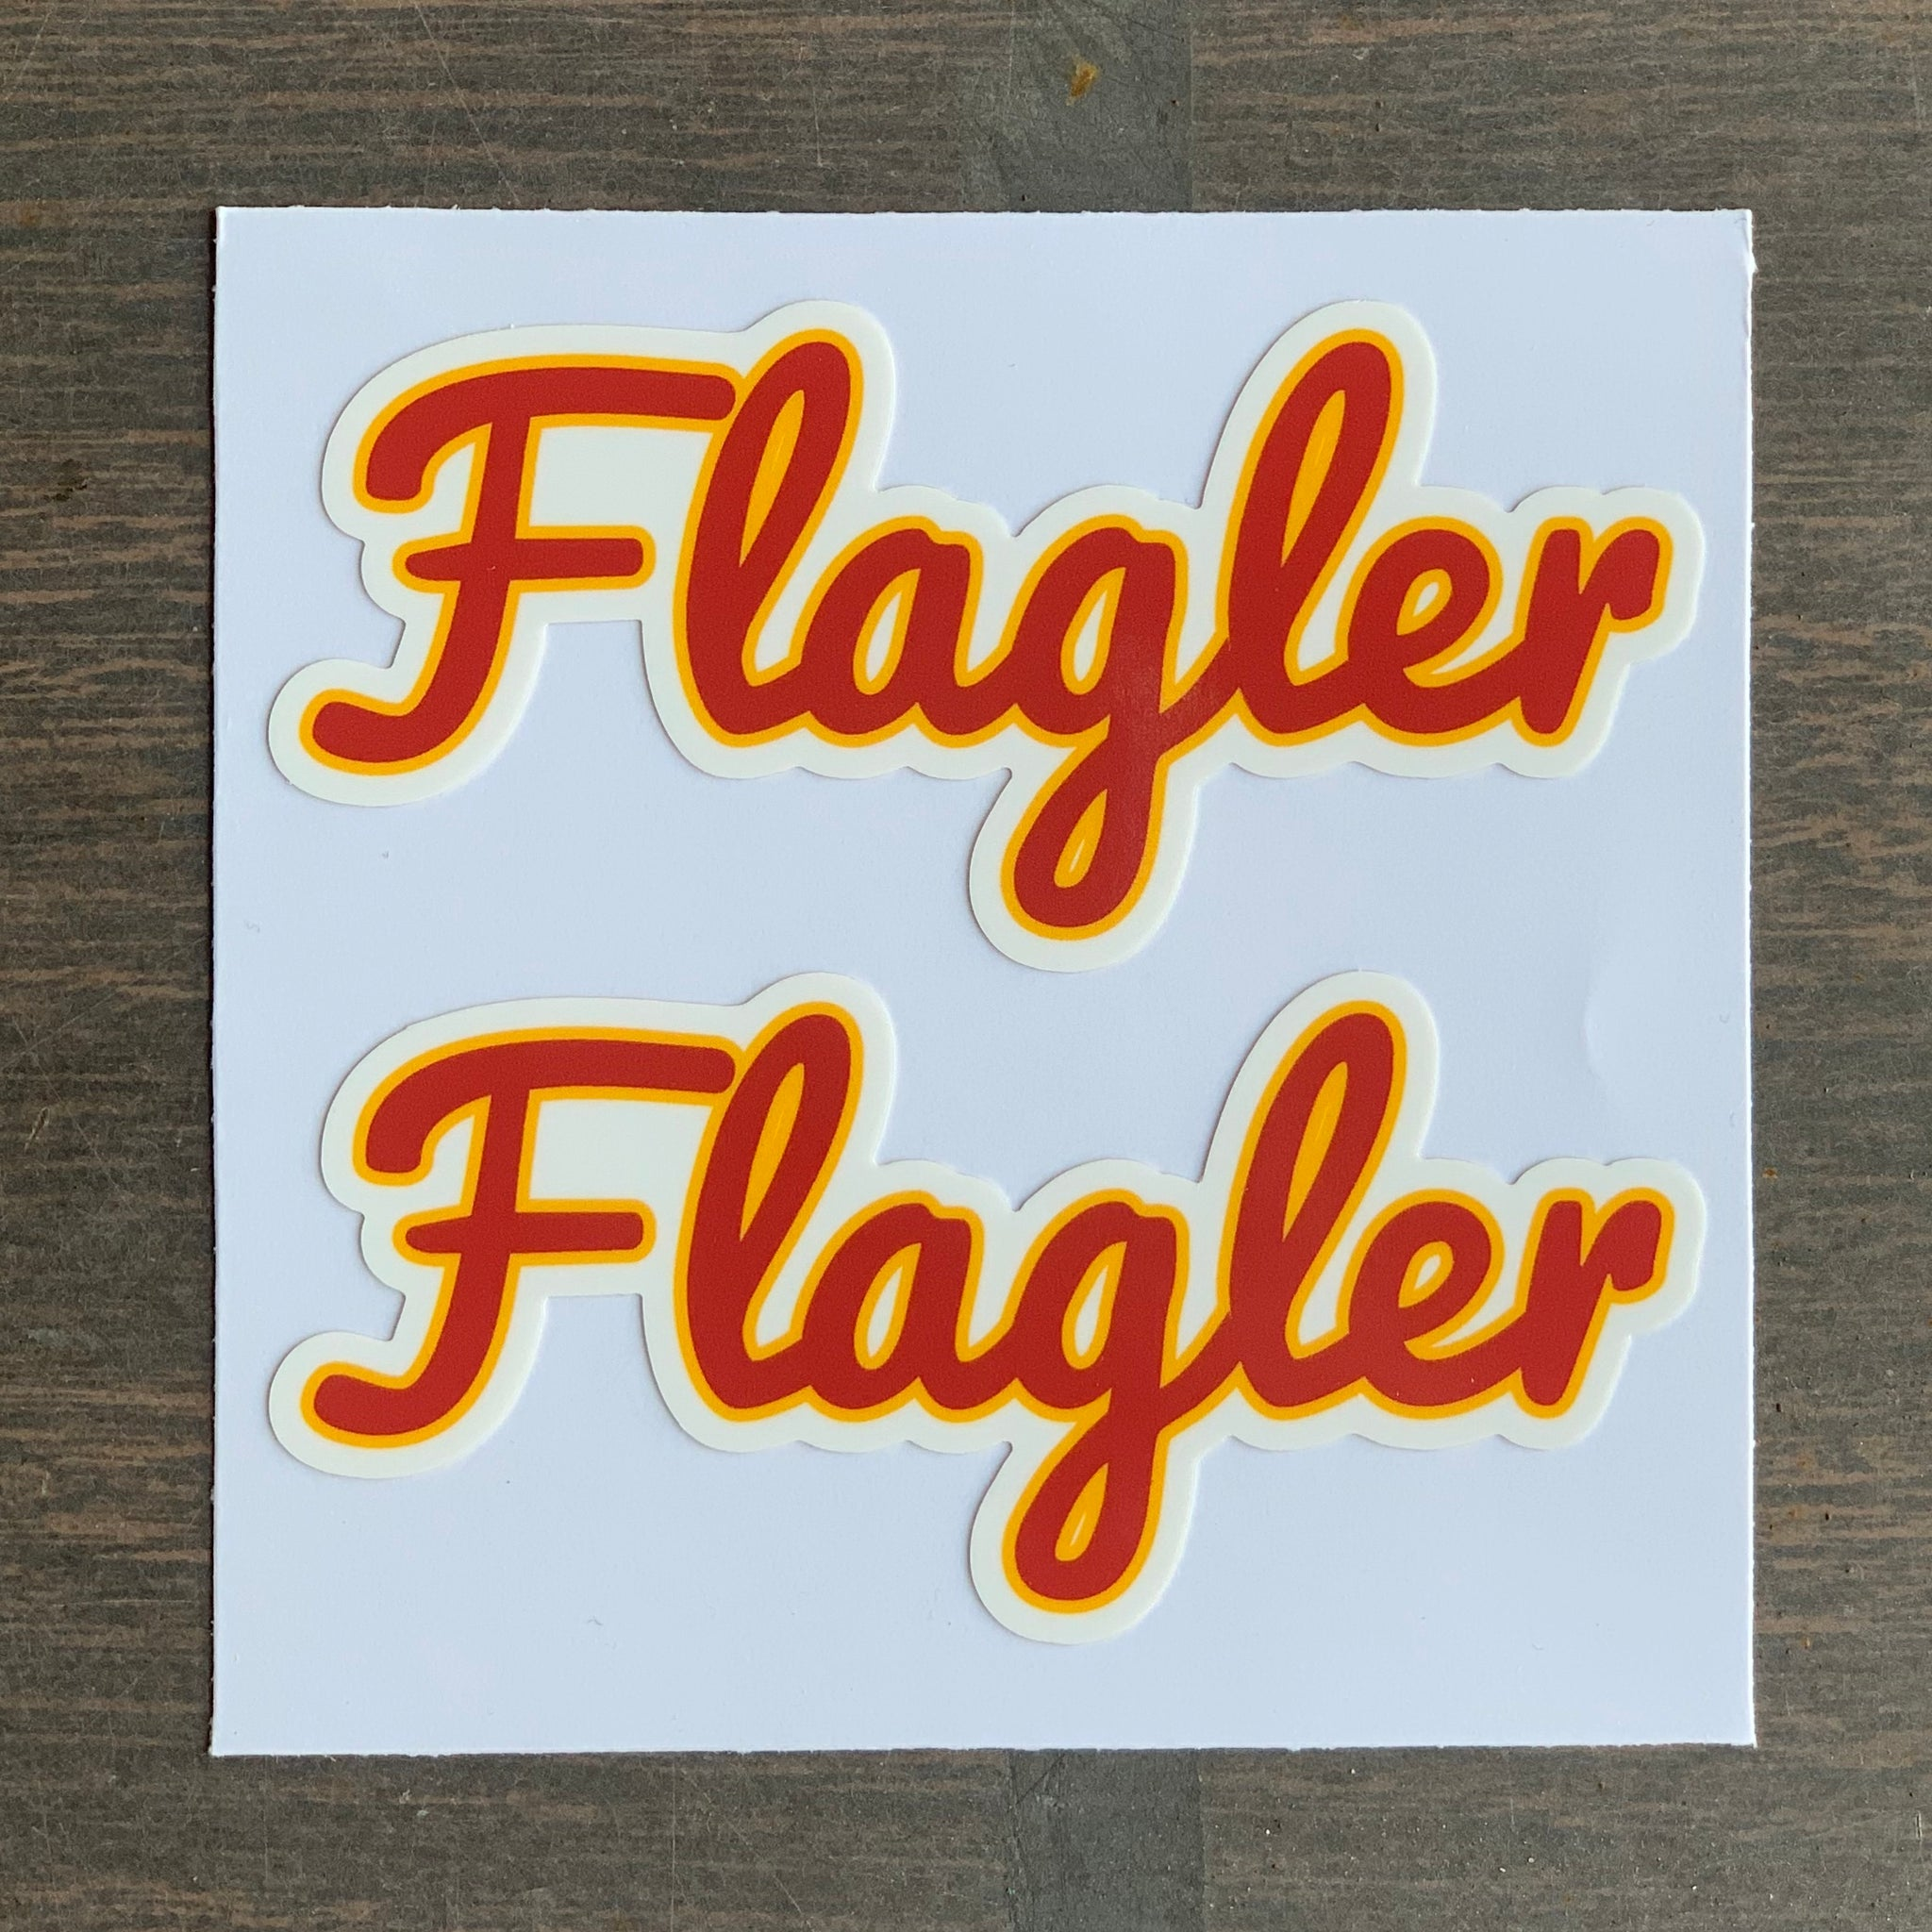 two pack of red and yellow cursive Flagler stickers